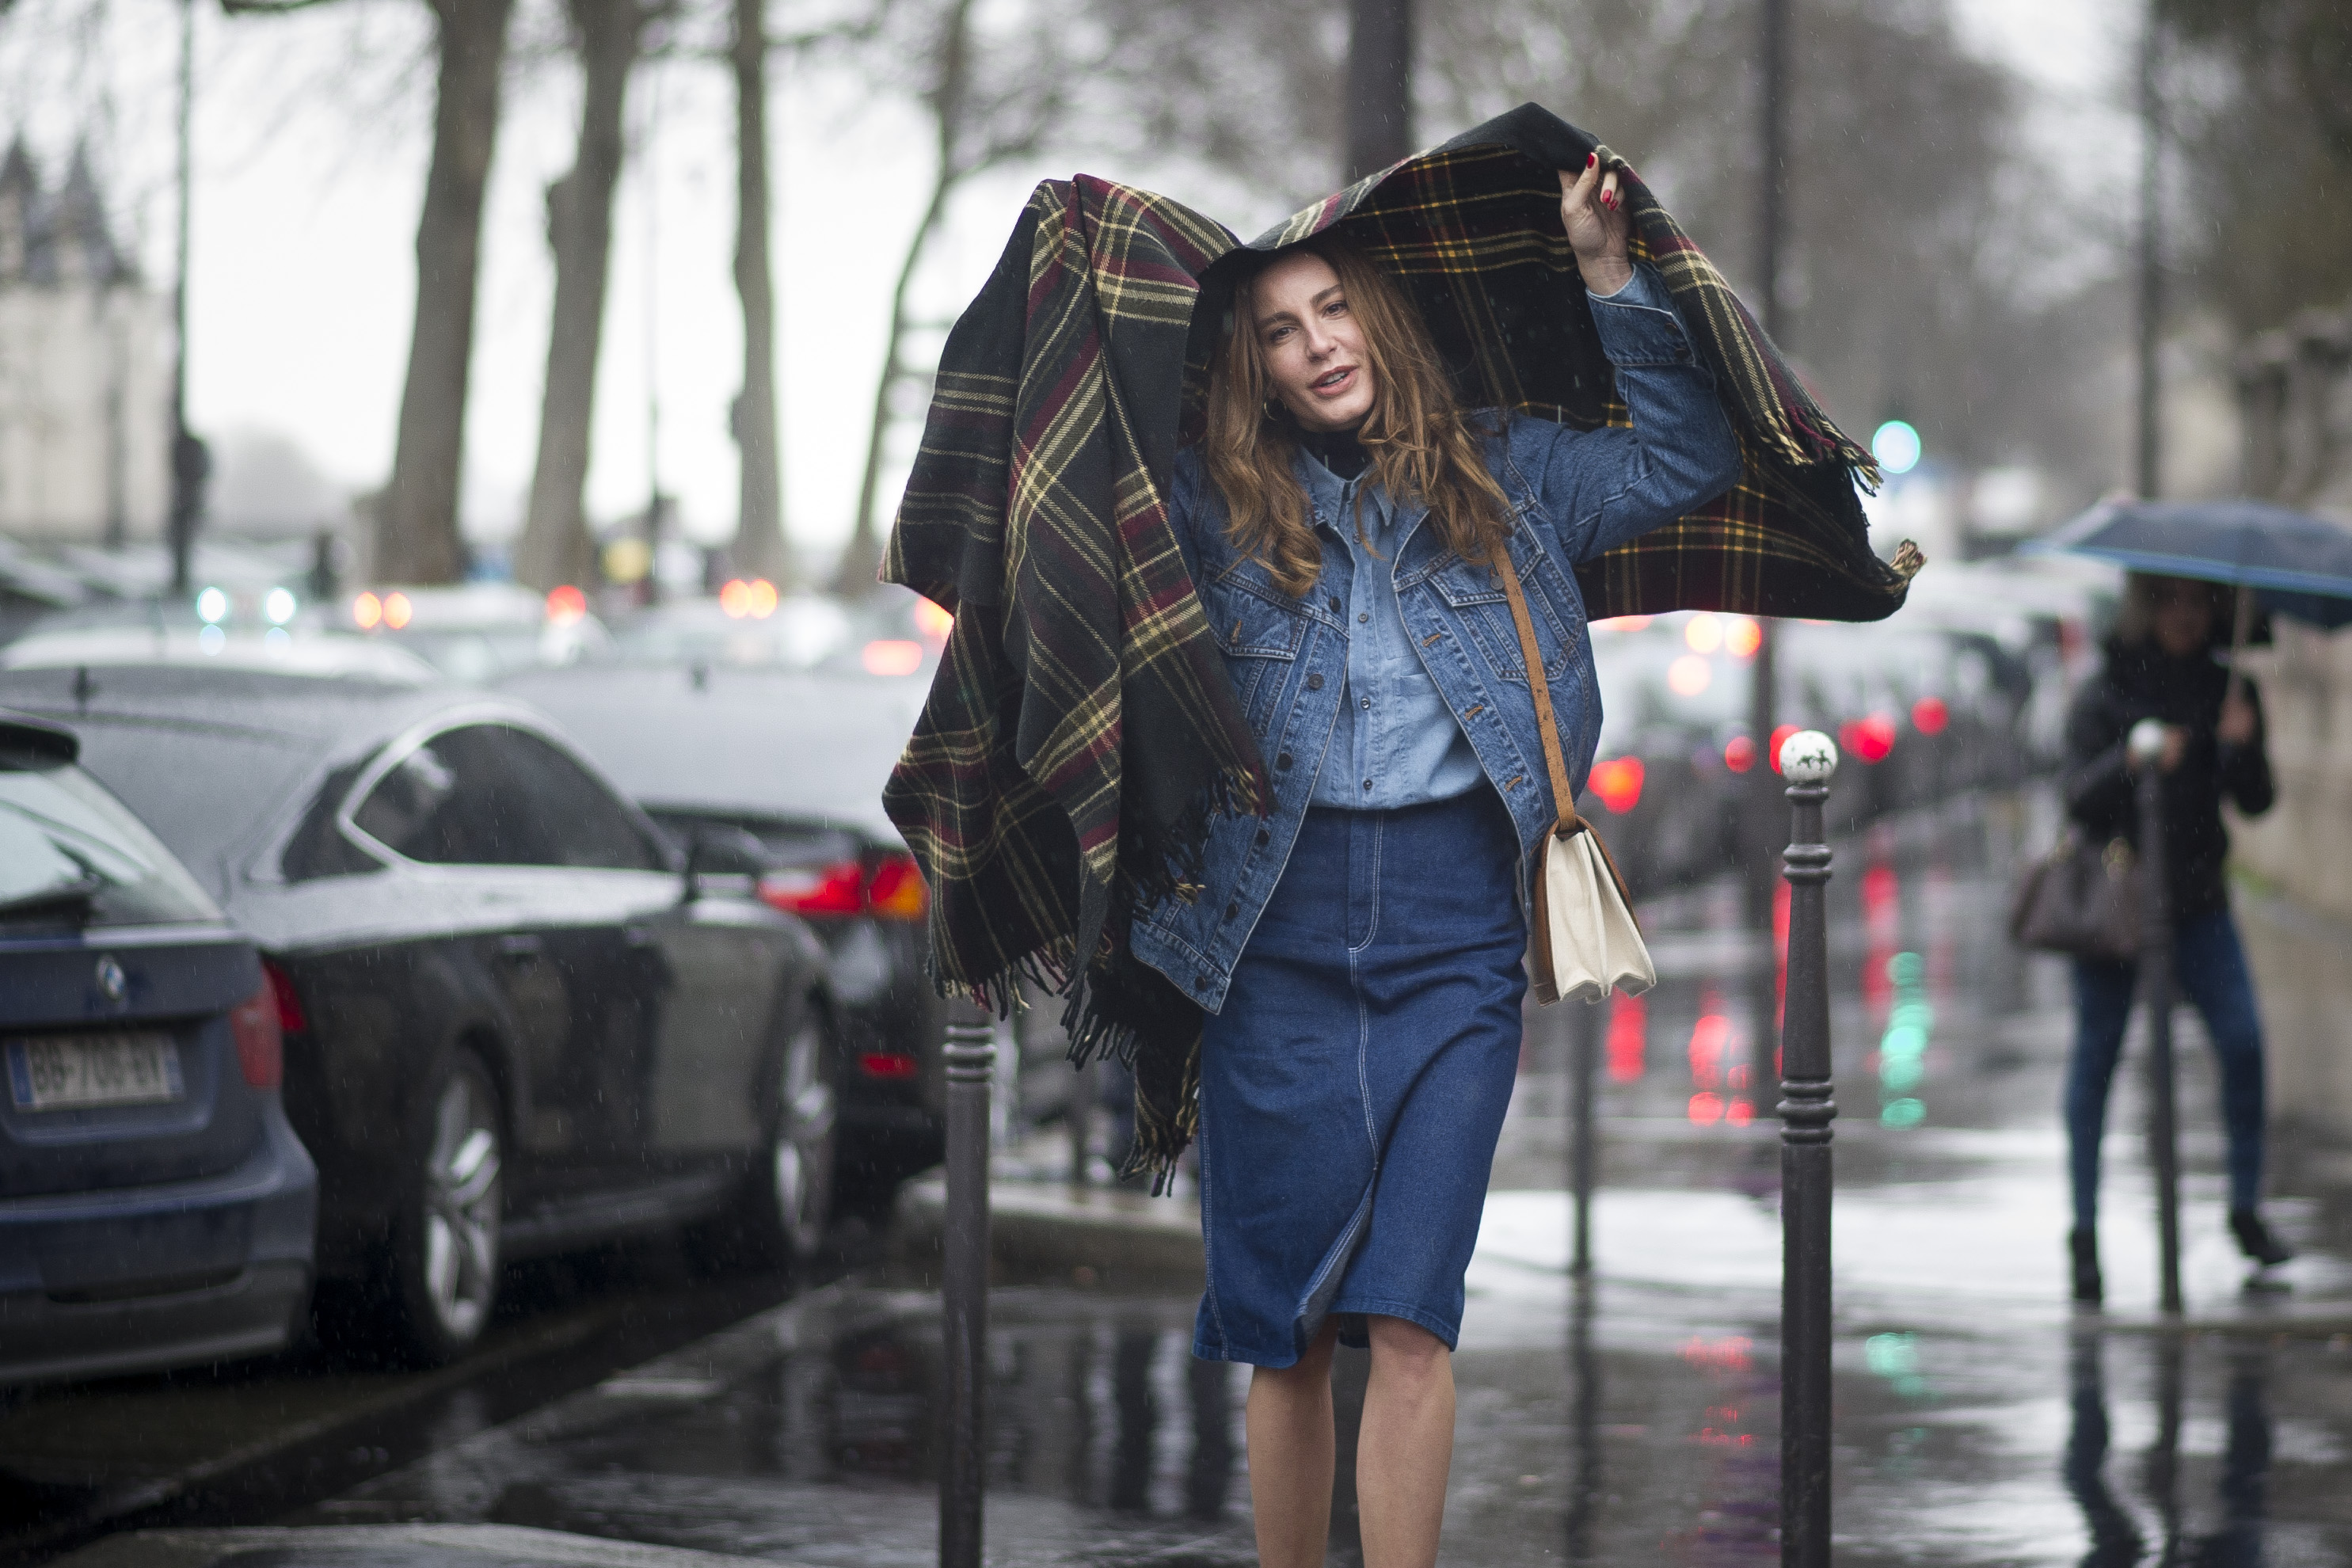 PARIS, FRANCE - FEBRUARY 27:  Ece Sukan seen outside the Balmain show on February 27, 2014 in Paris, France.  (Photo by Timur Emek/Getty Images)